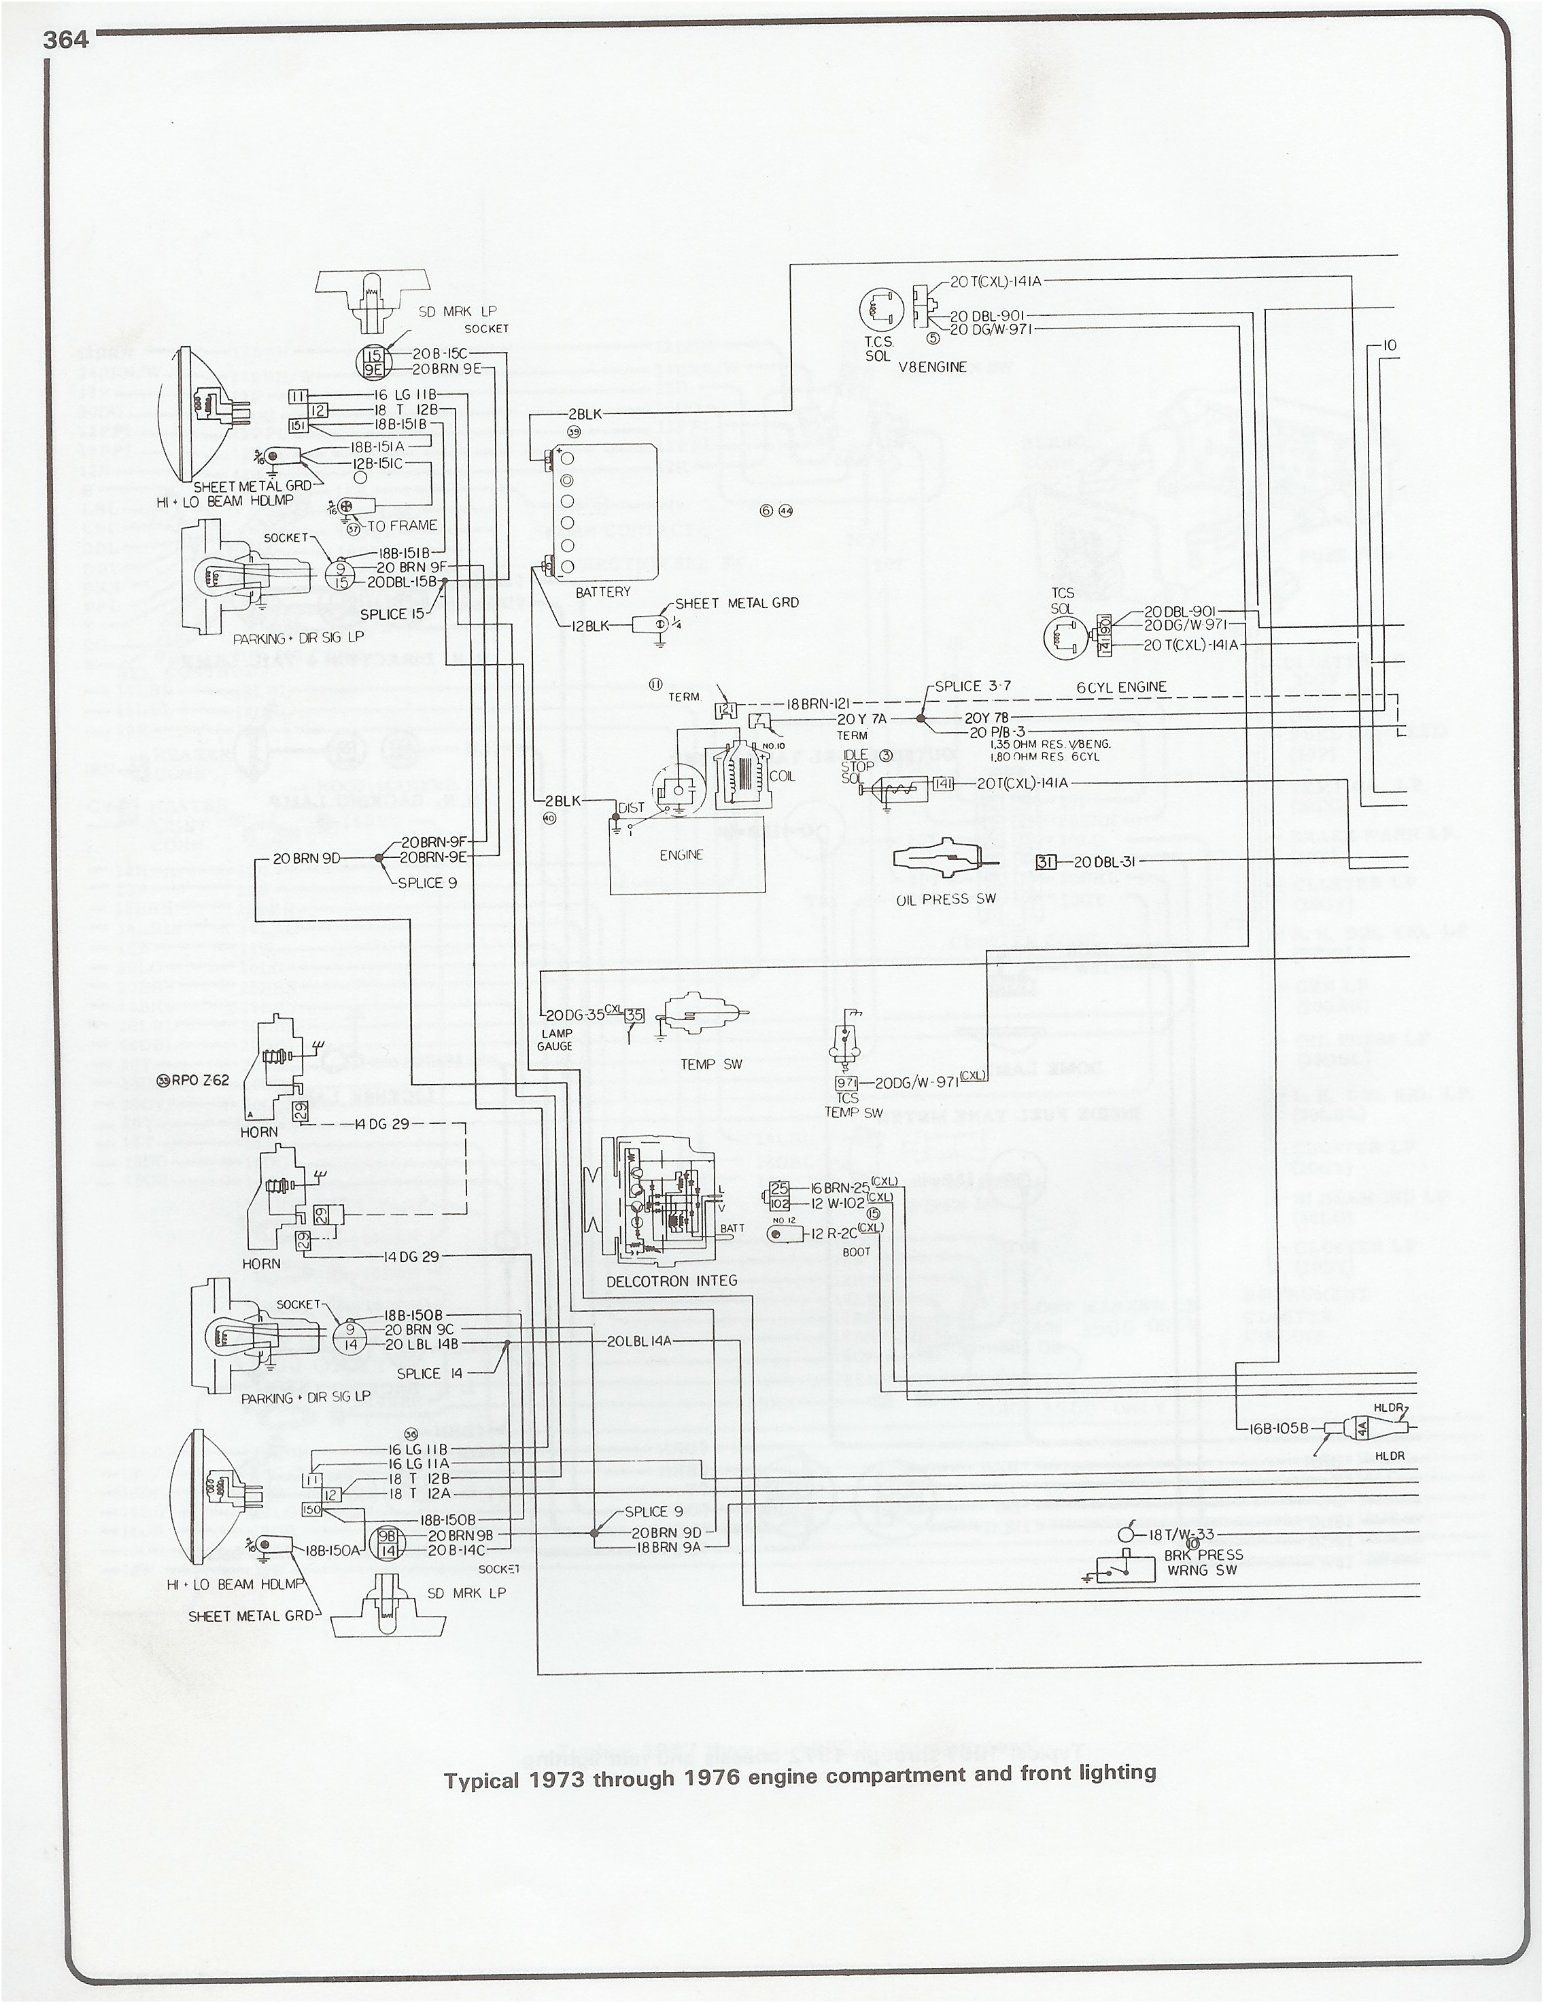 small resolution of 73 chevy c10 fuse box wiring diagram mega 73 chevy c10 fuse box